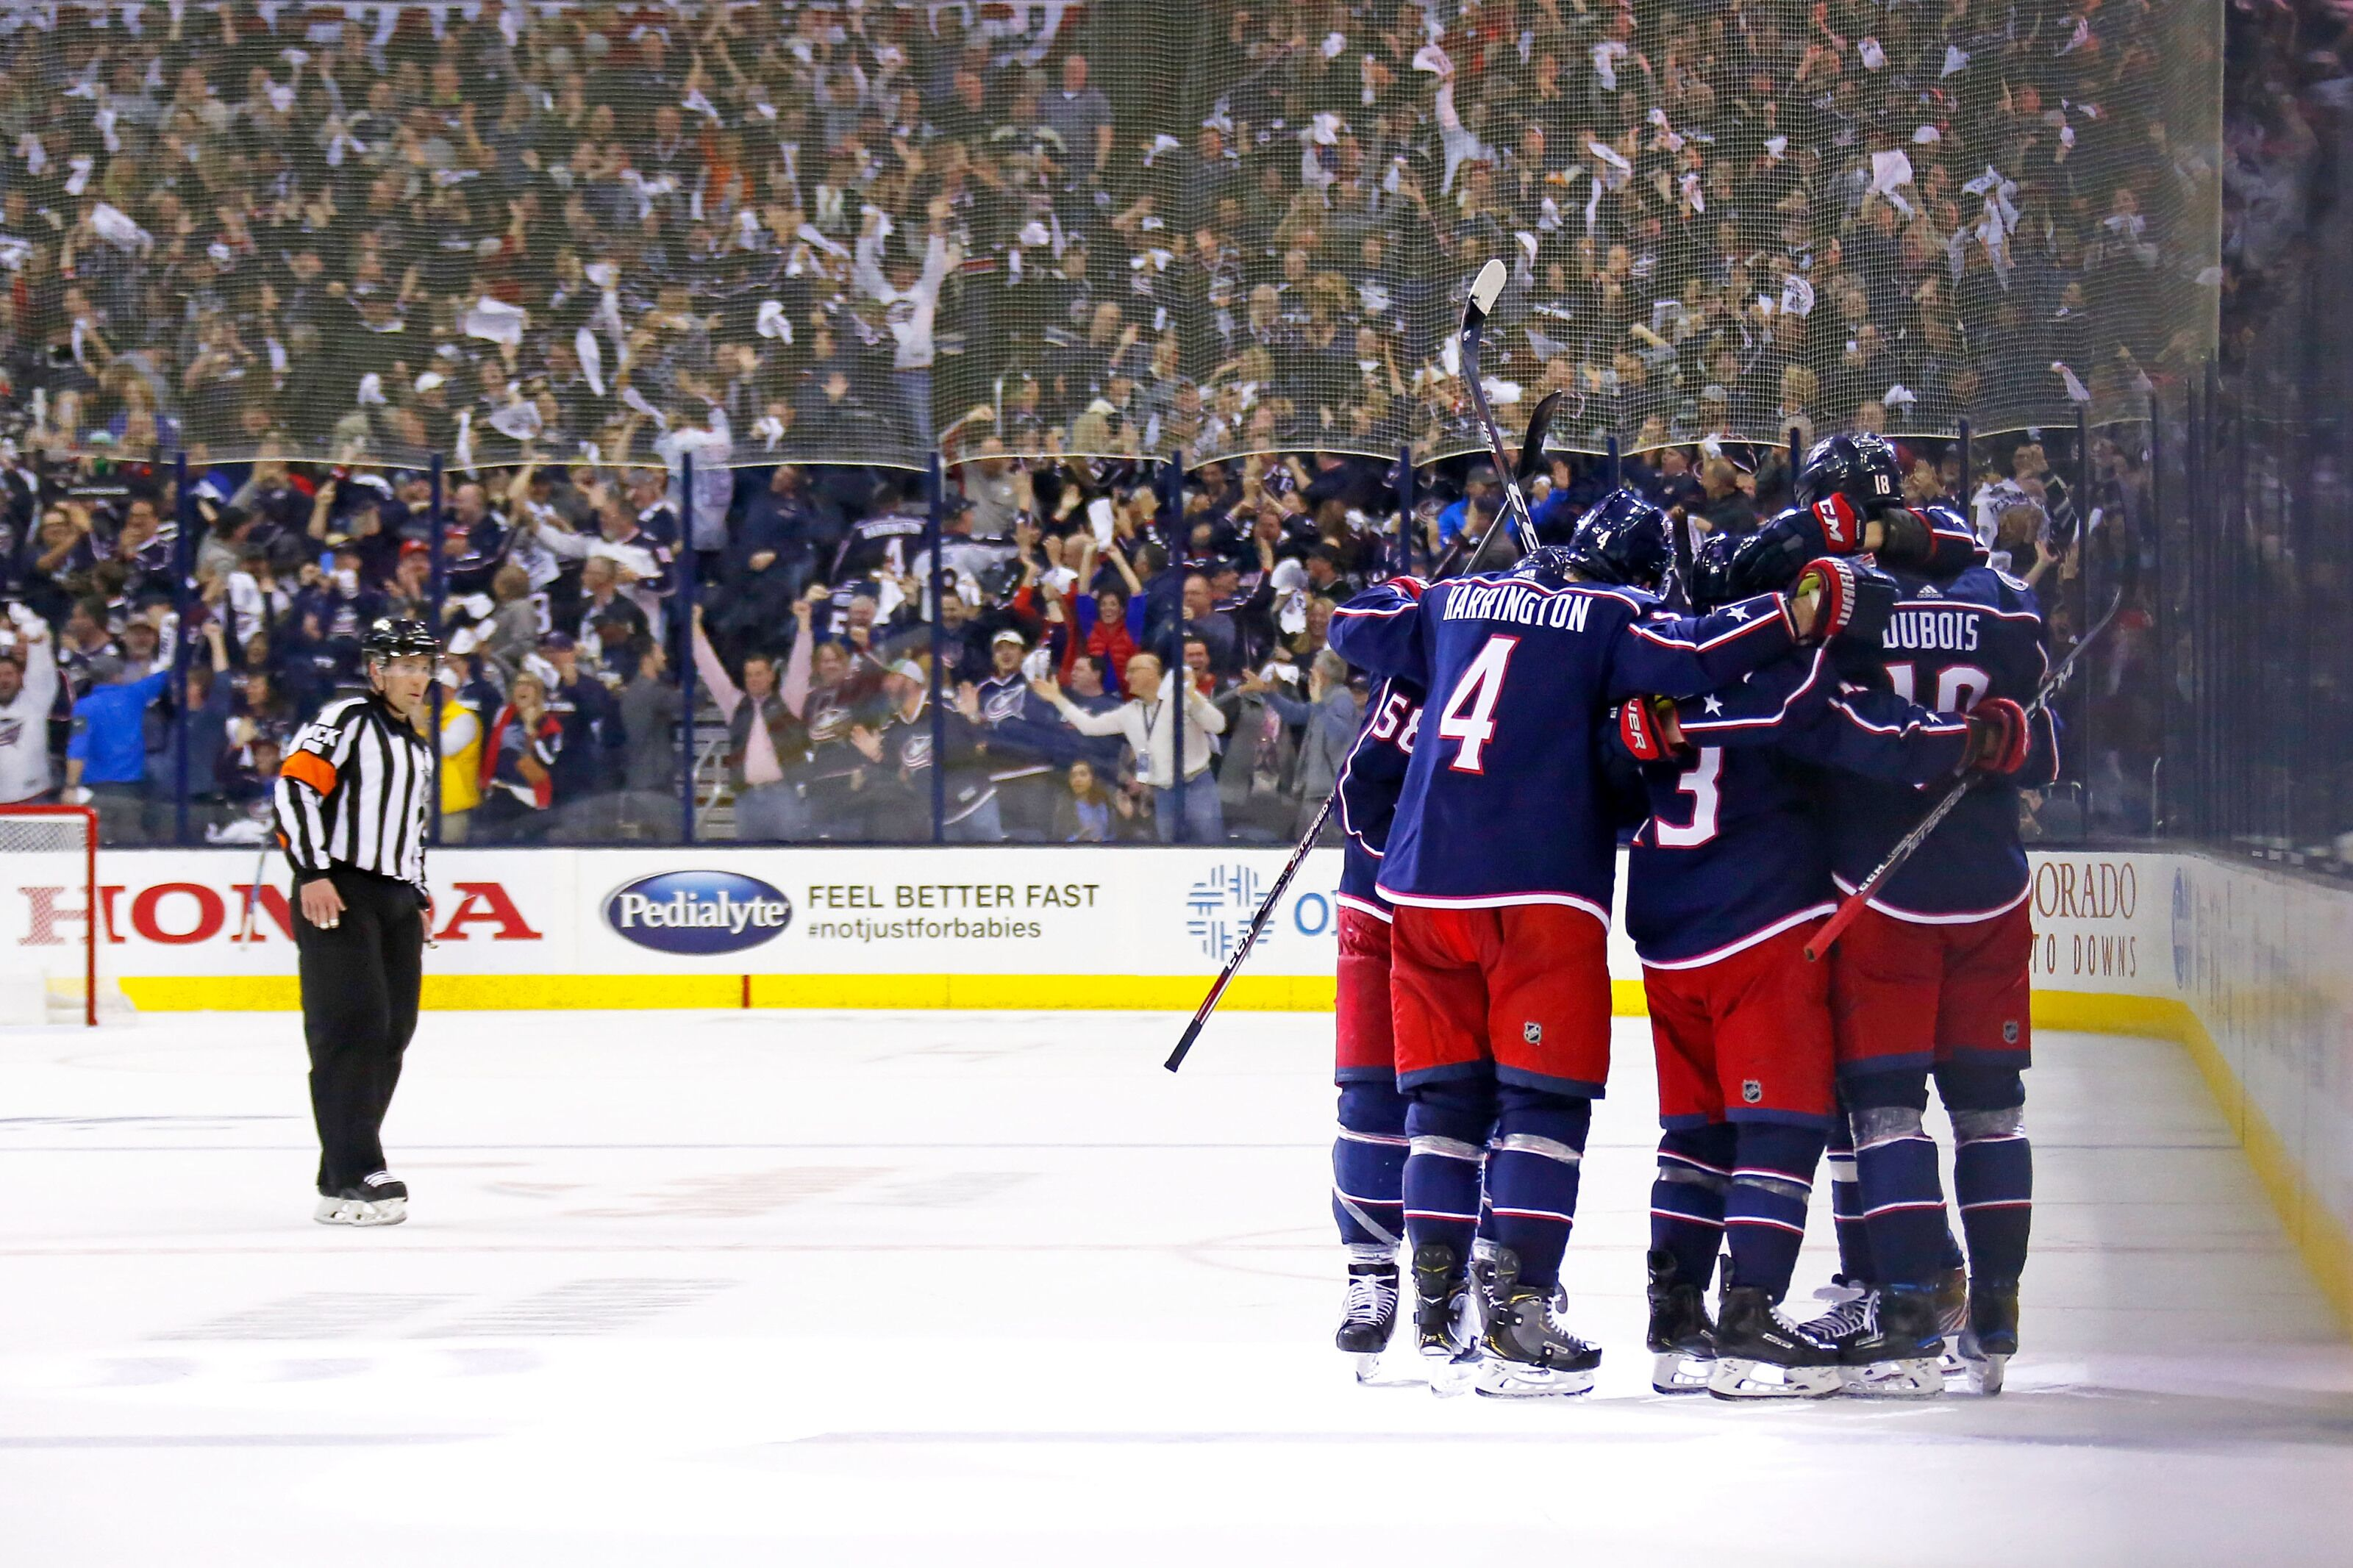 COLUMBUS, OH - APRIL 14: Cam Atkinson #13 of the Columbus Blue Jackets is congratulated by his teammates after scoring an empty net goal during the third period of Game Three of the Eastern Conference First Round against the Tampa Bay Lightning during the 2019 NHL Stanley Cup Playoffs on April 14, 2019 at Nationwide Arena in Columbus, Ohio. Columbus defeated Tampa Bay 3-1 to take a 3-0 series lead. (Photo by Kirk Irwin/Getty Images)